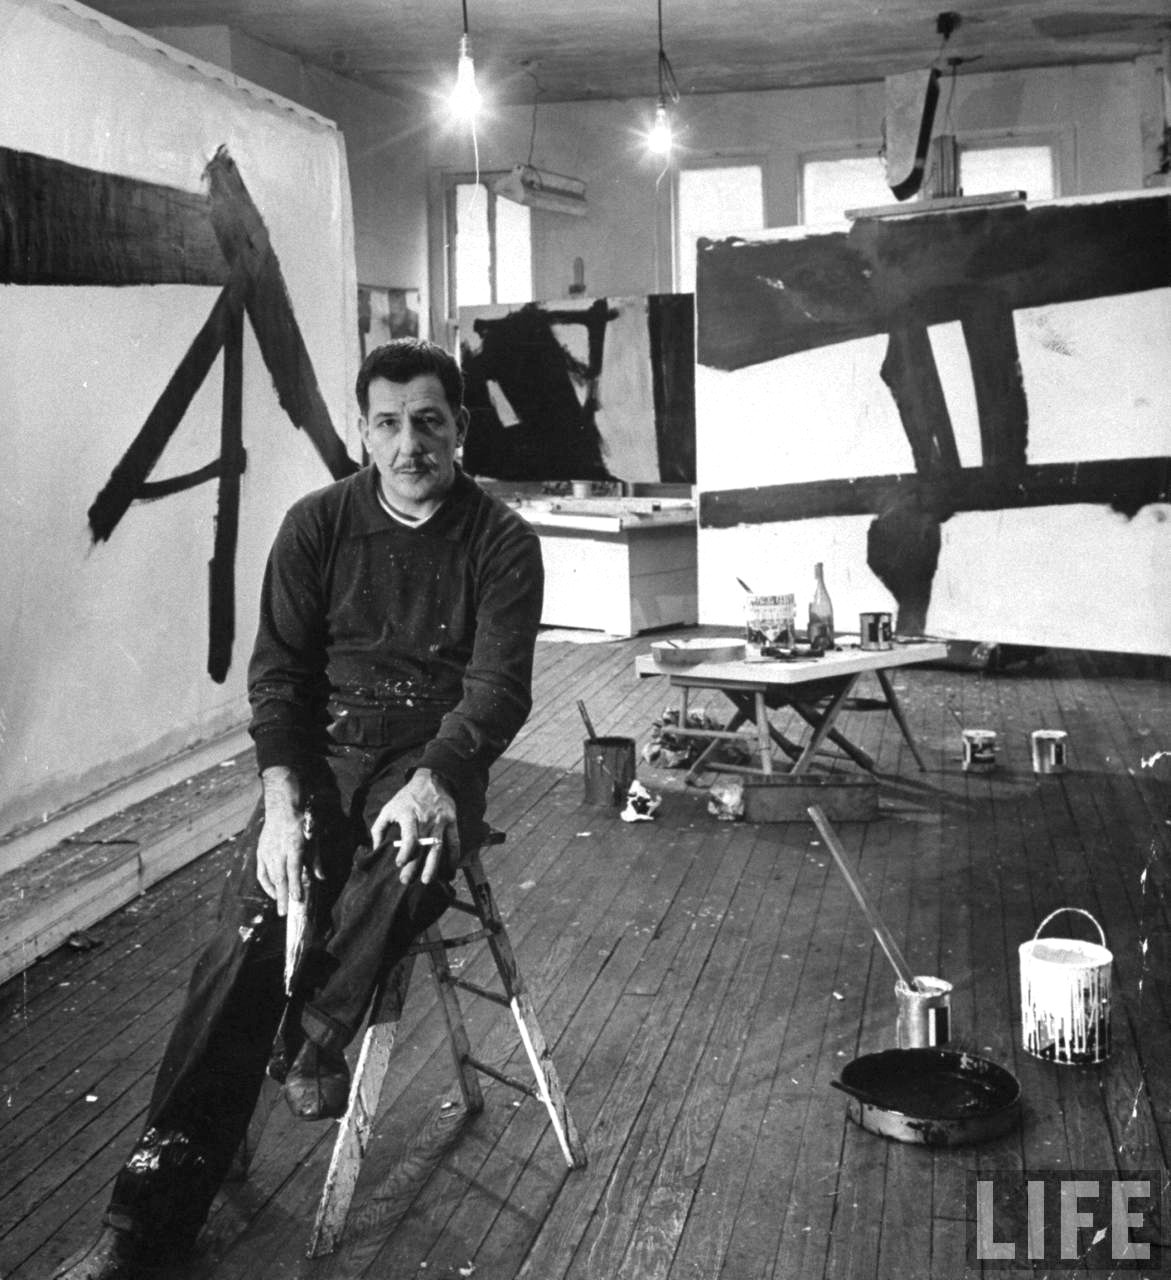 pav-love-ian:  Franz Kline - One of my heroes of Abstract Expressionalism. His version was primarily an abstraction of structures.  As you see the elegant I-beams in Mies' design (in the previous post), can you sense what Franz would do? Yes! I'll Copyright that thought, then hit the canvas. - Pav-LOVE-ian